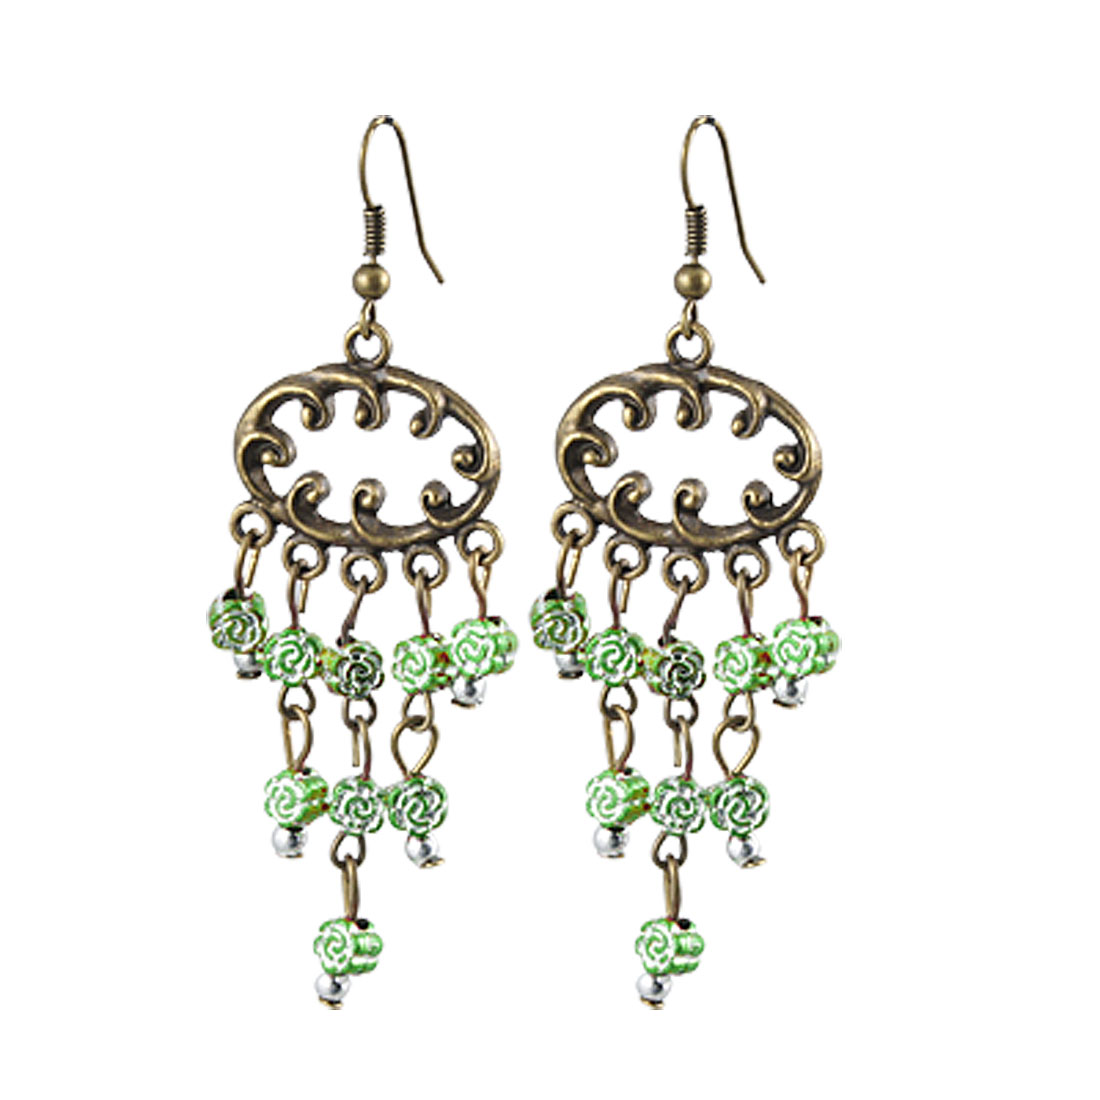 Lady Green Floral Bead Decor Bronze Tone Pendant Dangling Earrings